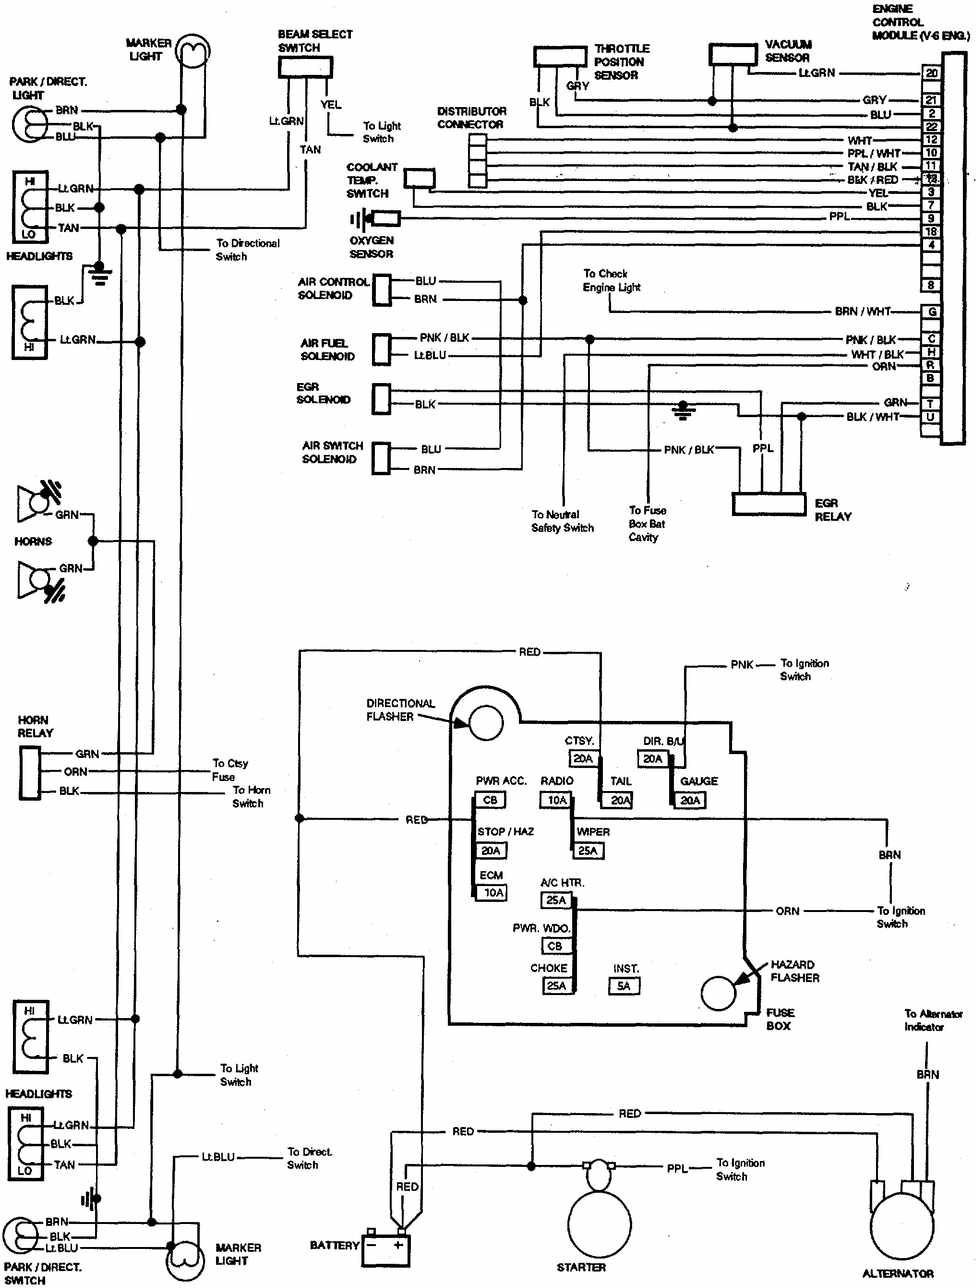 1987 Silverado Wiring Diagram Another Blog About Electrical Schematic Herein We Can See The 1981 Chevrolet V8 Trucks Rh Pinterest Com Chevy P30